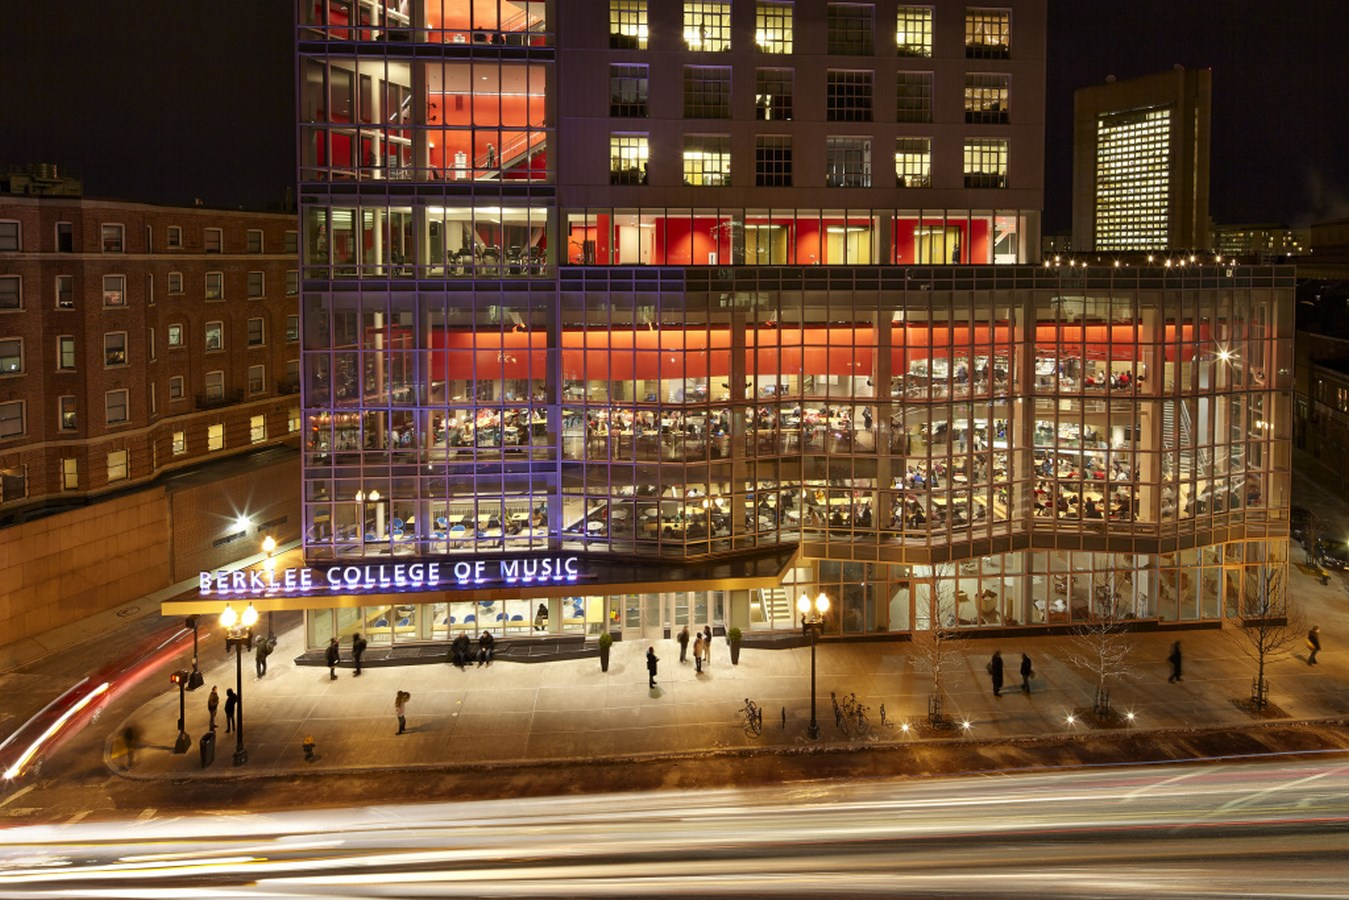 25 Most Iconic Structures In Boston - BERKLEE COLLEGE OF MUSIC